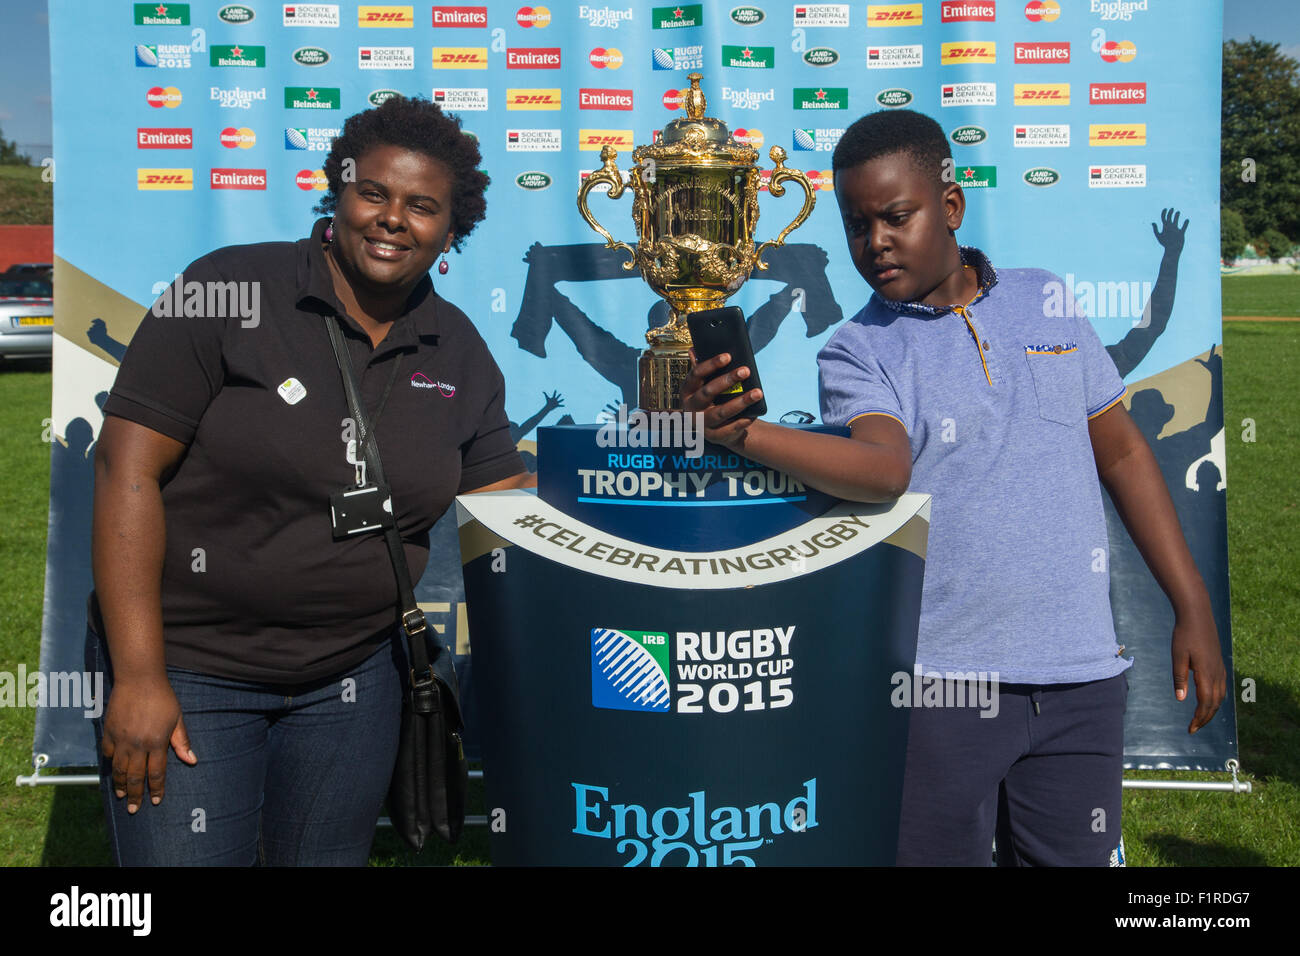 London, UK. 06th September 2015. Selfie moment with the Webb Ellis Cup for Amal whislt being photographed together with his mum Noreen as it was displayed at the East London RFC for the UK and Northern Ireland Rugby World Cup Trophy Tour. Credit: Elsie Kibue / Alamy Live News Stock Photo